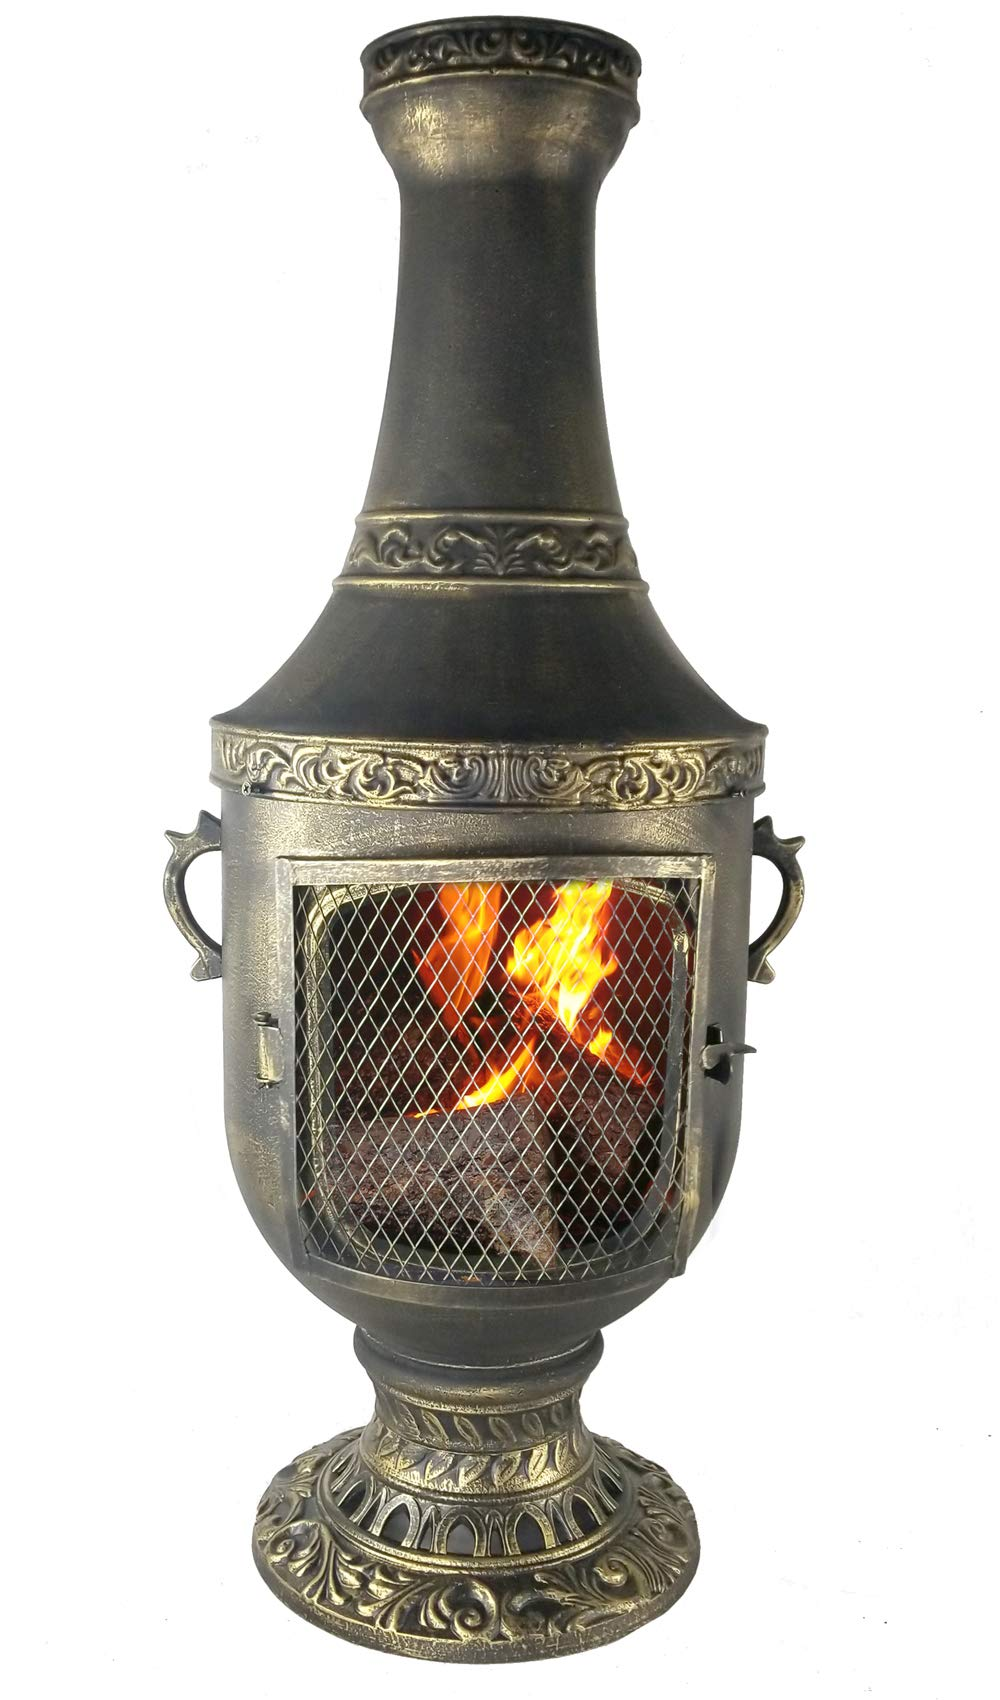 The Venetian Grill & Oven Chiminea in Gold Accent CAST Aluminum by The Blue Rooster